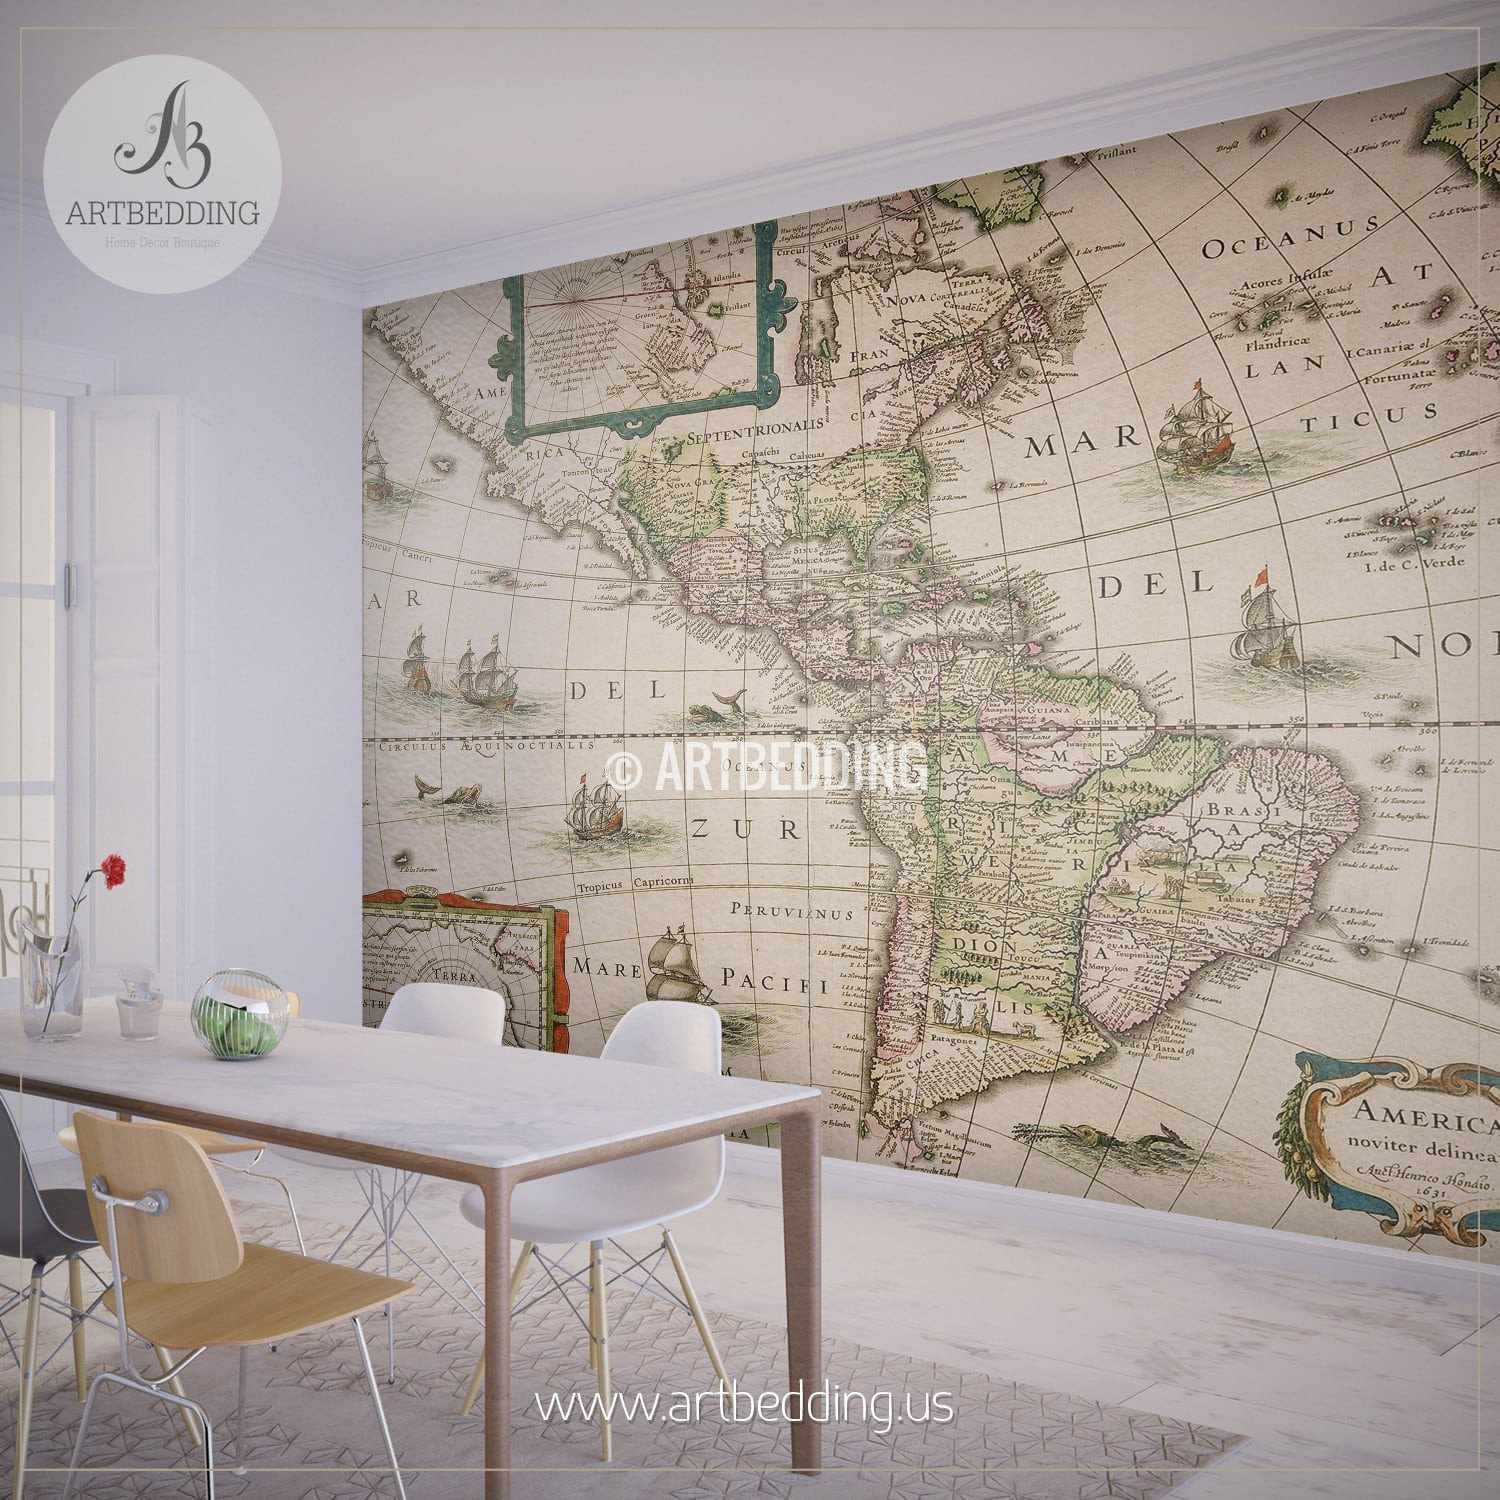 ... America Map Dated 1631 Wall Mural, Self Adhesive Peel U0026 Stick Photo  Mural, Atlas ...